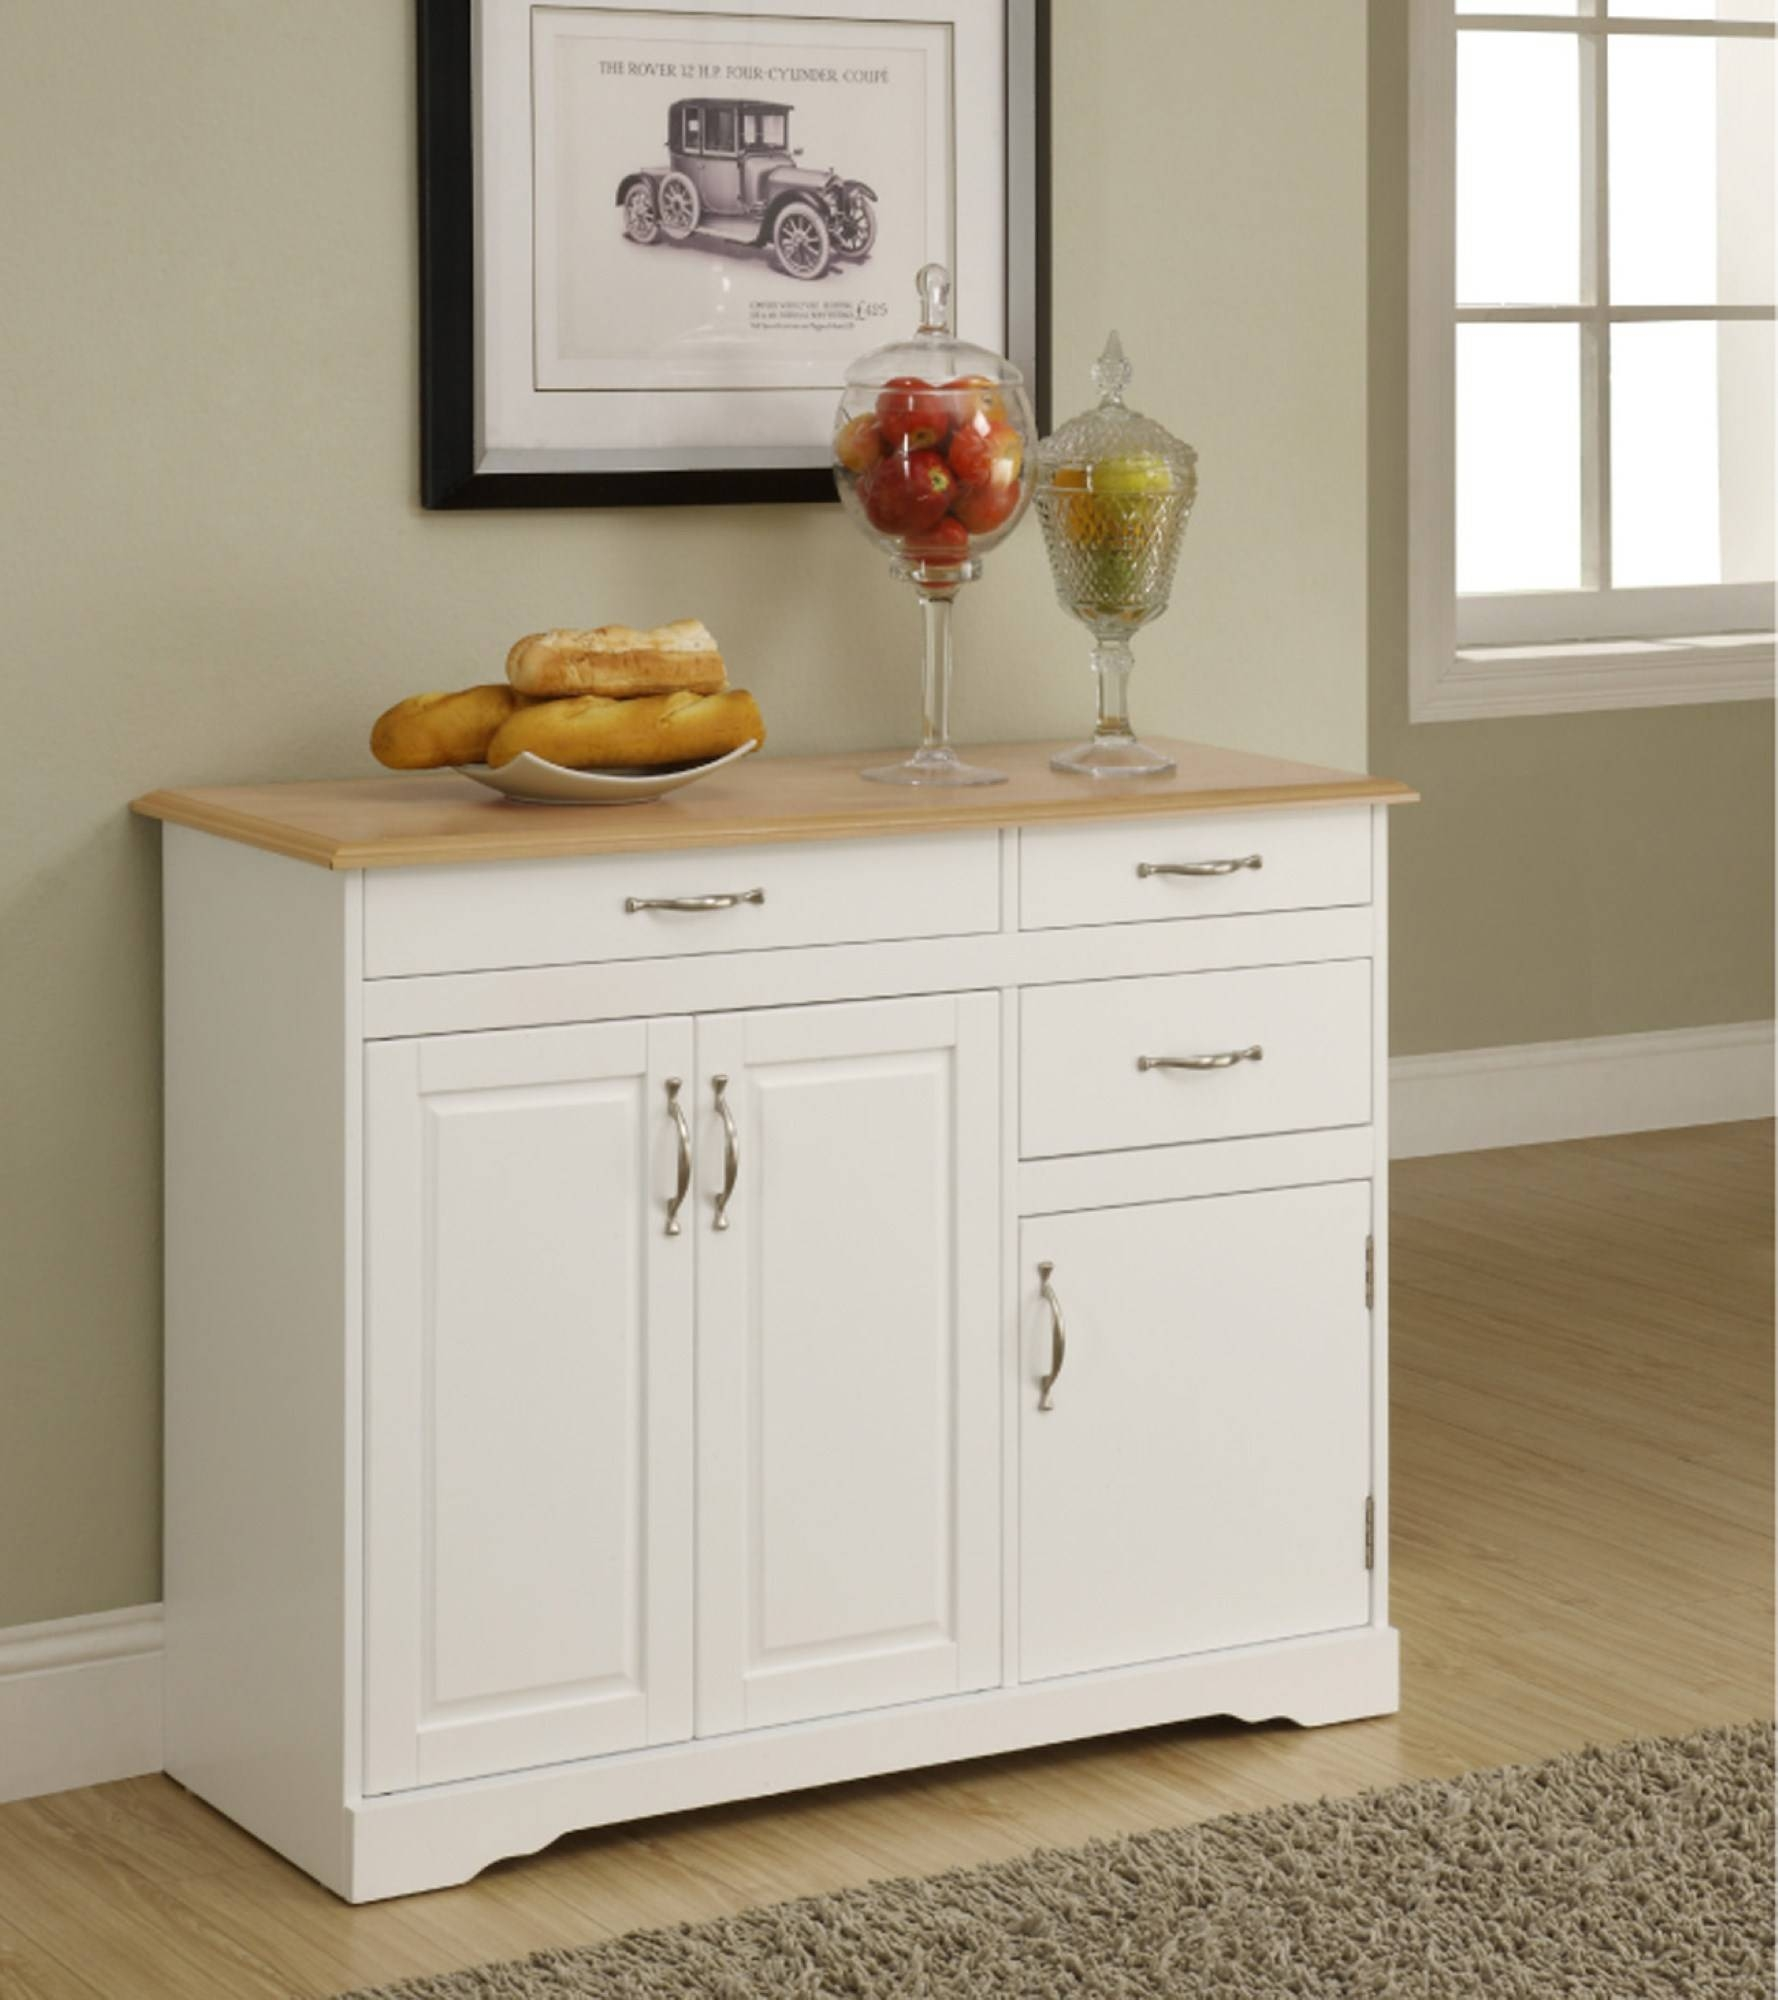 Furniture: Fashionable Stylish Buffets And Sideboards For Home With Regard To Stylish Glass Buffets And Sideboards (View 6 of 15)